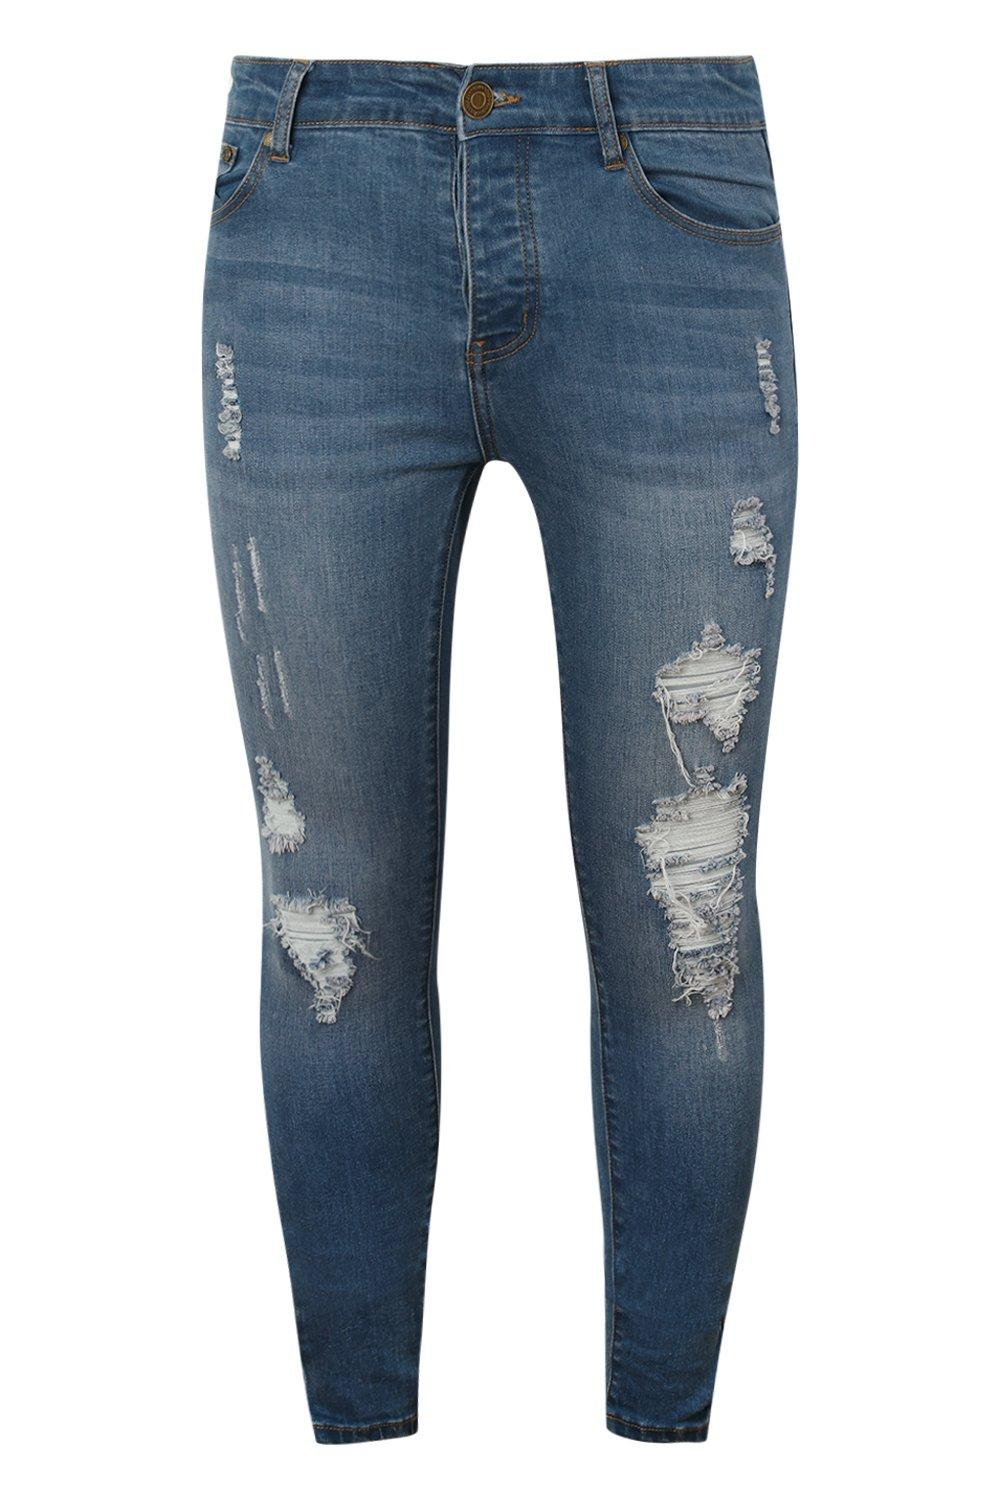 boohooMAN blue Spray On Skinny Jeans With Distressing